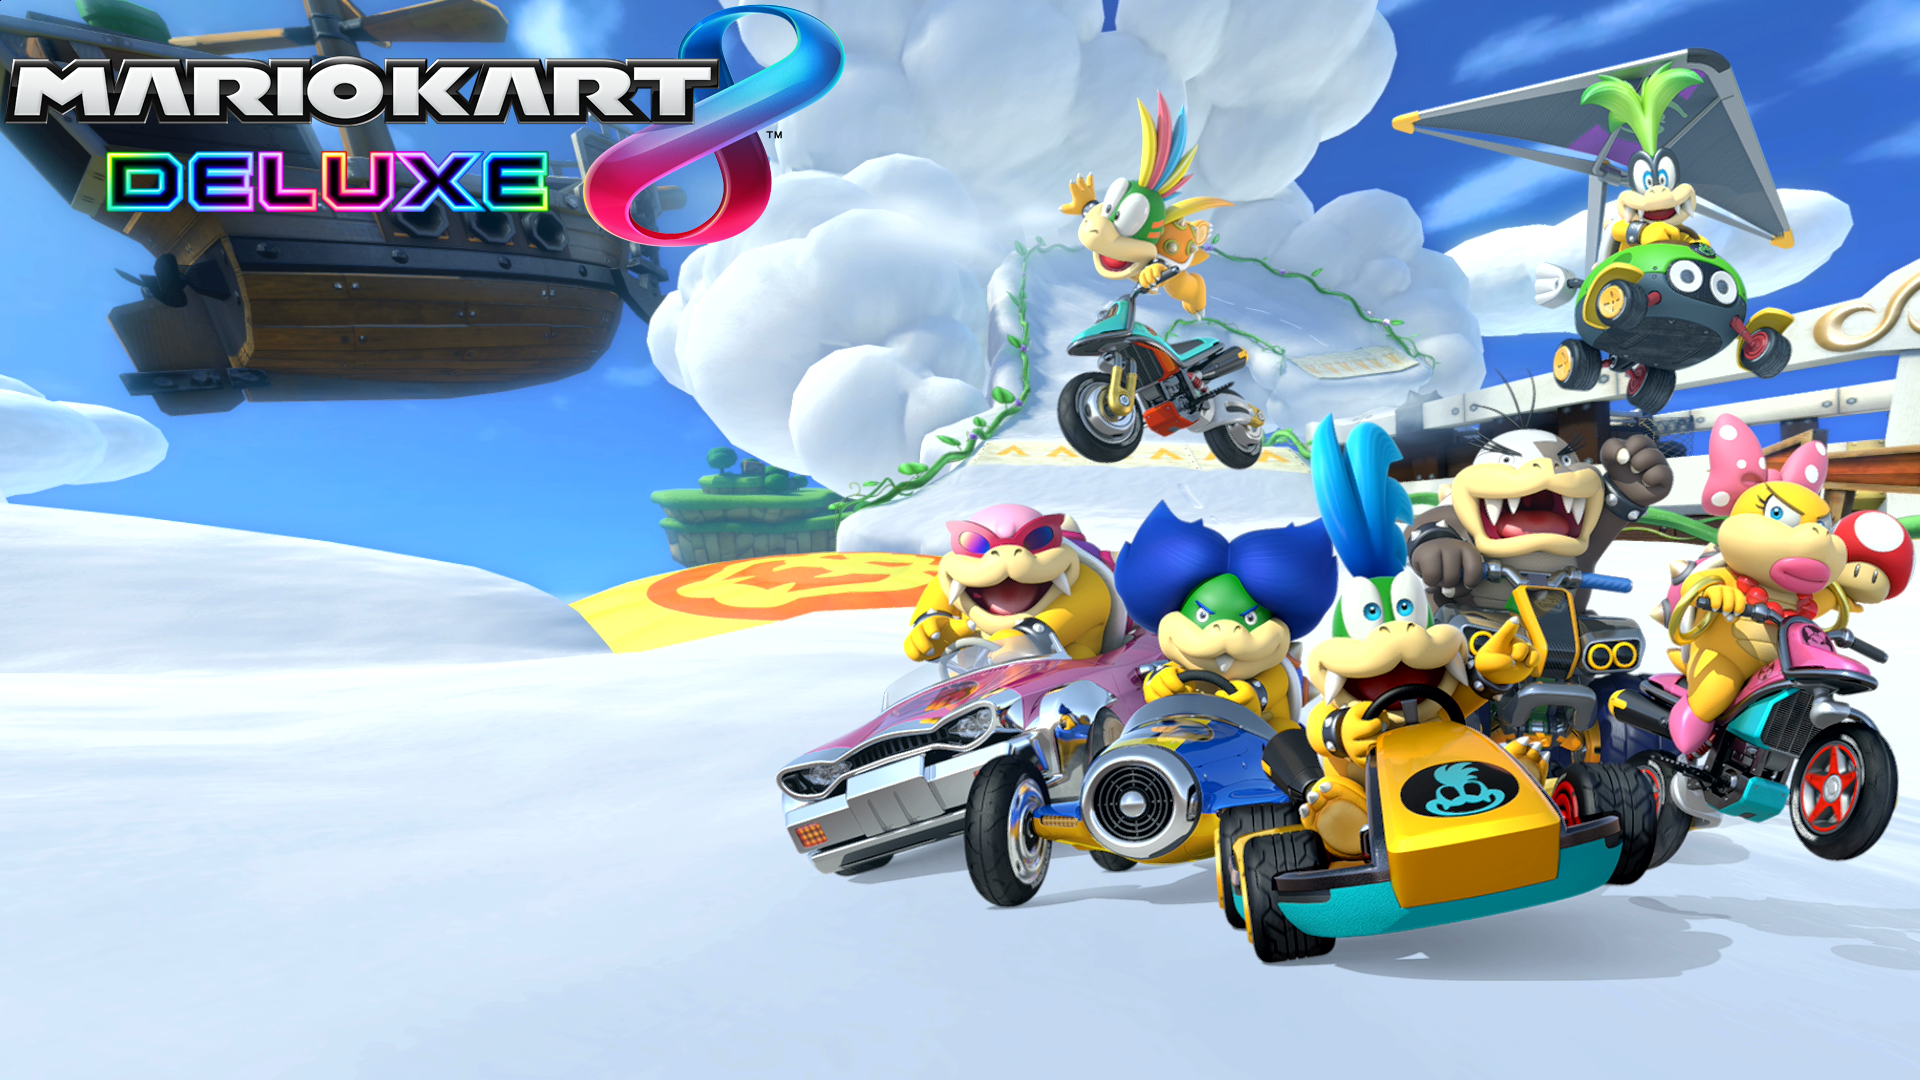 Mario Kart 8 Background: Mario Kart 8 Deluxe Koopalings Wallpaper HD Wallpaper